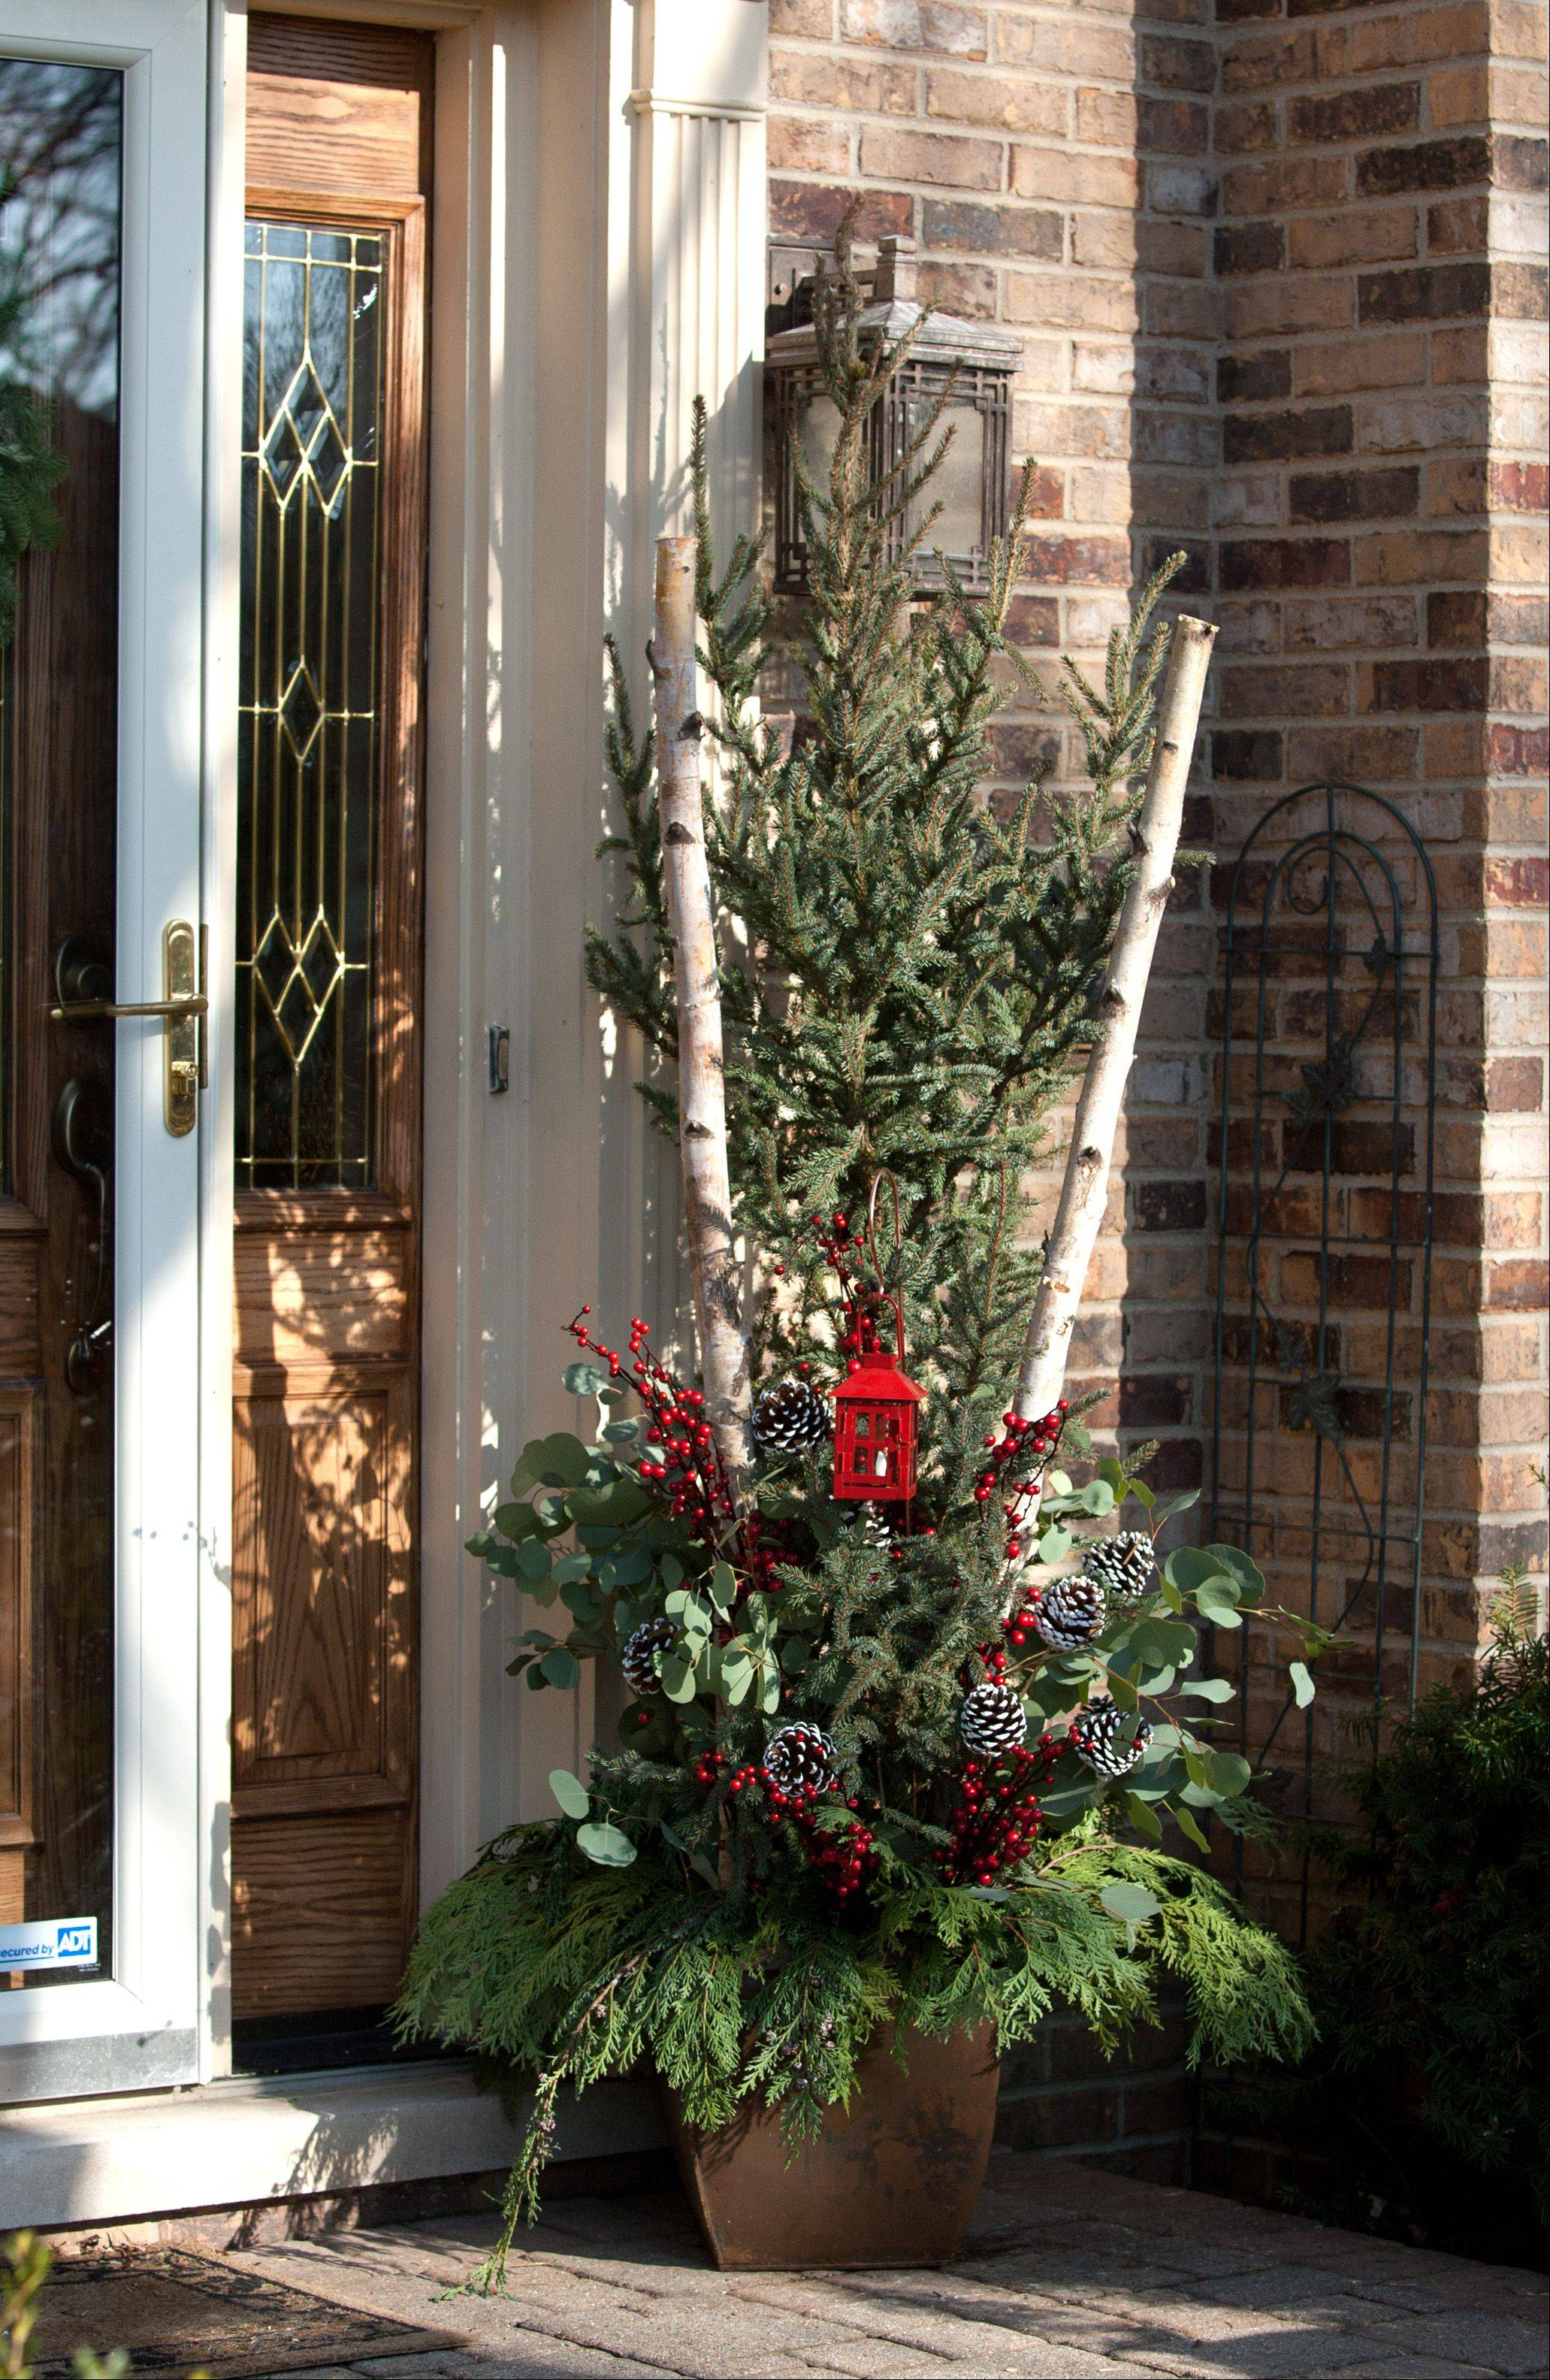 Christensen worked on plenty of seasonal containers for customers this holiday season. Her tip? Combine textures for varied interest. Here is the container she put together for her front porch.